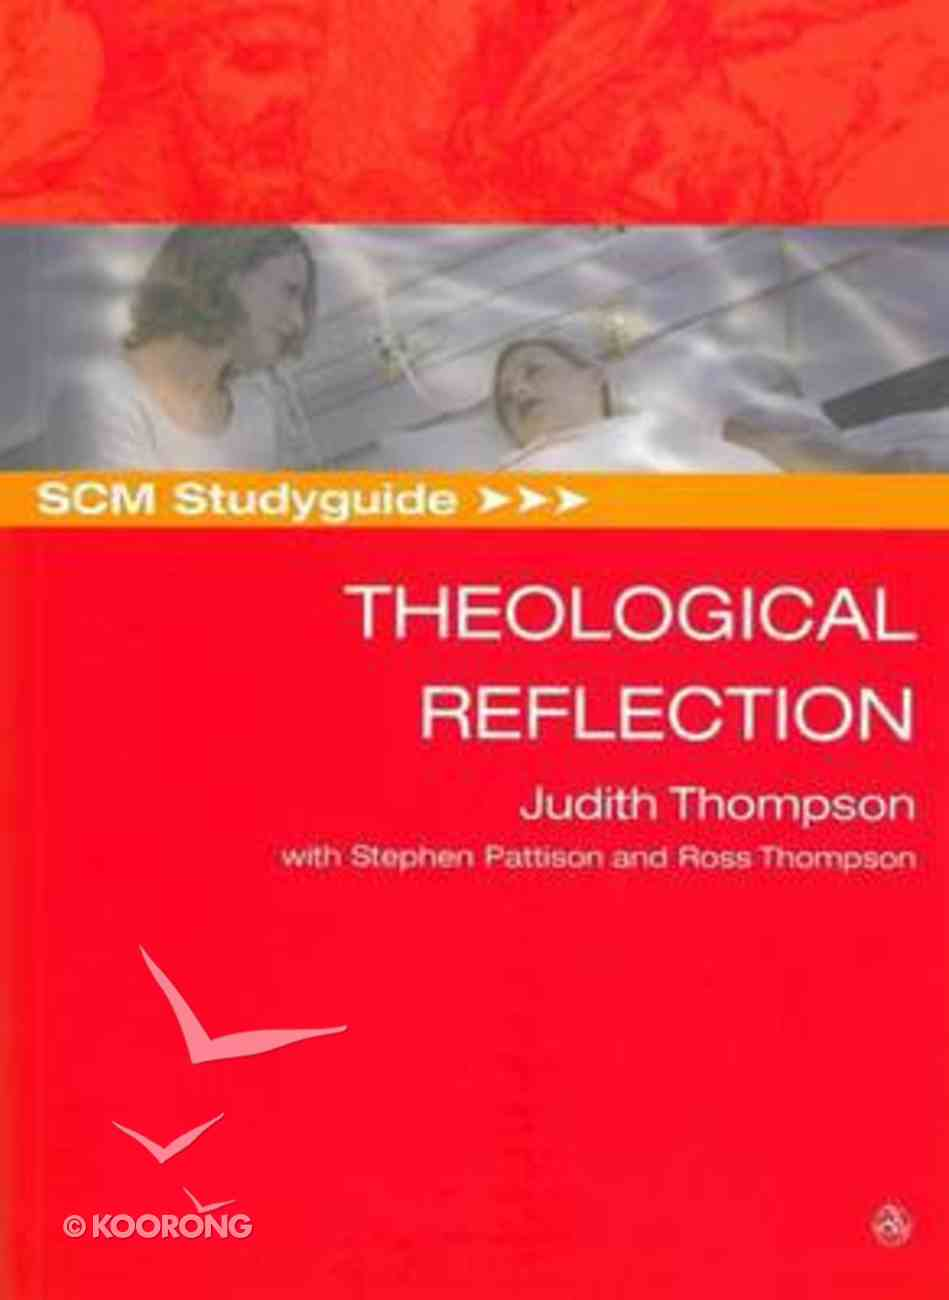 Scm Study Guide: Theological Reflection (Scm Studyguide Series) Paperback